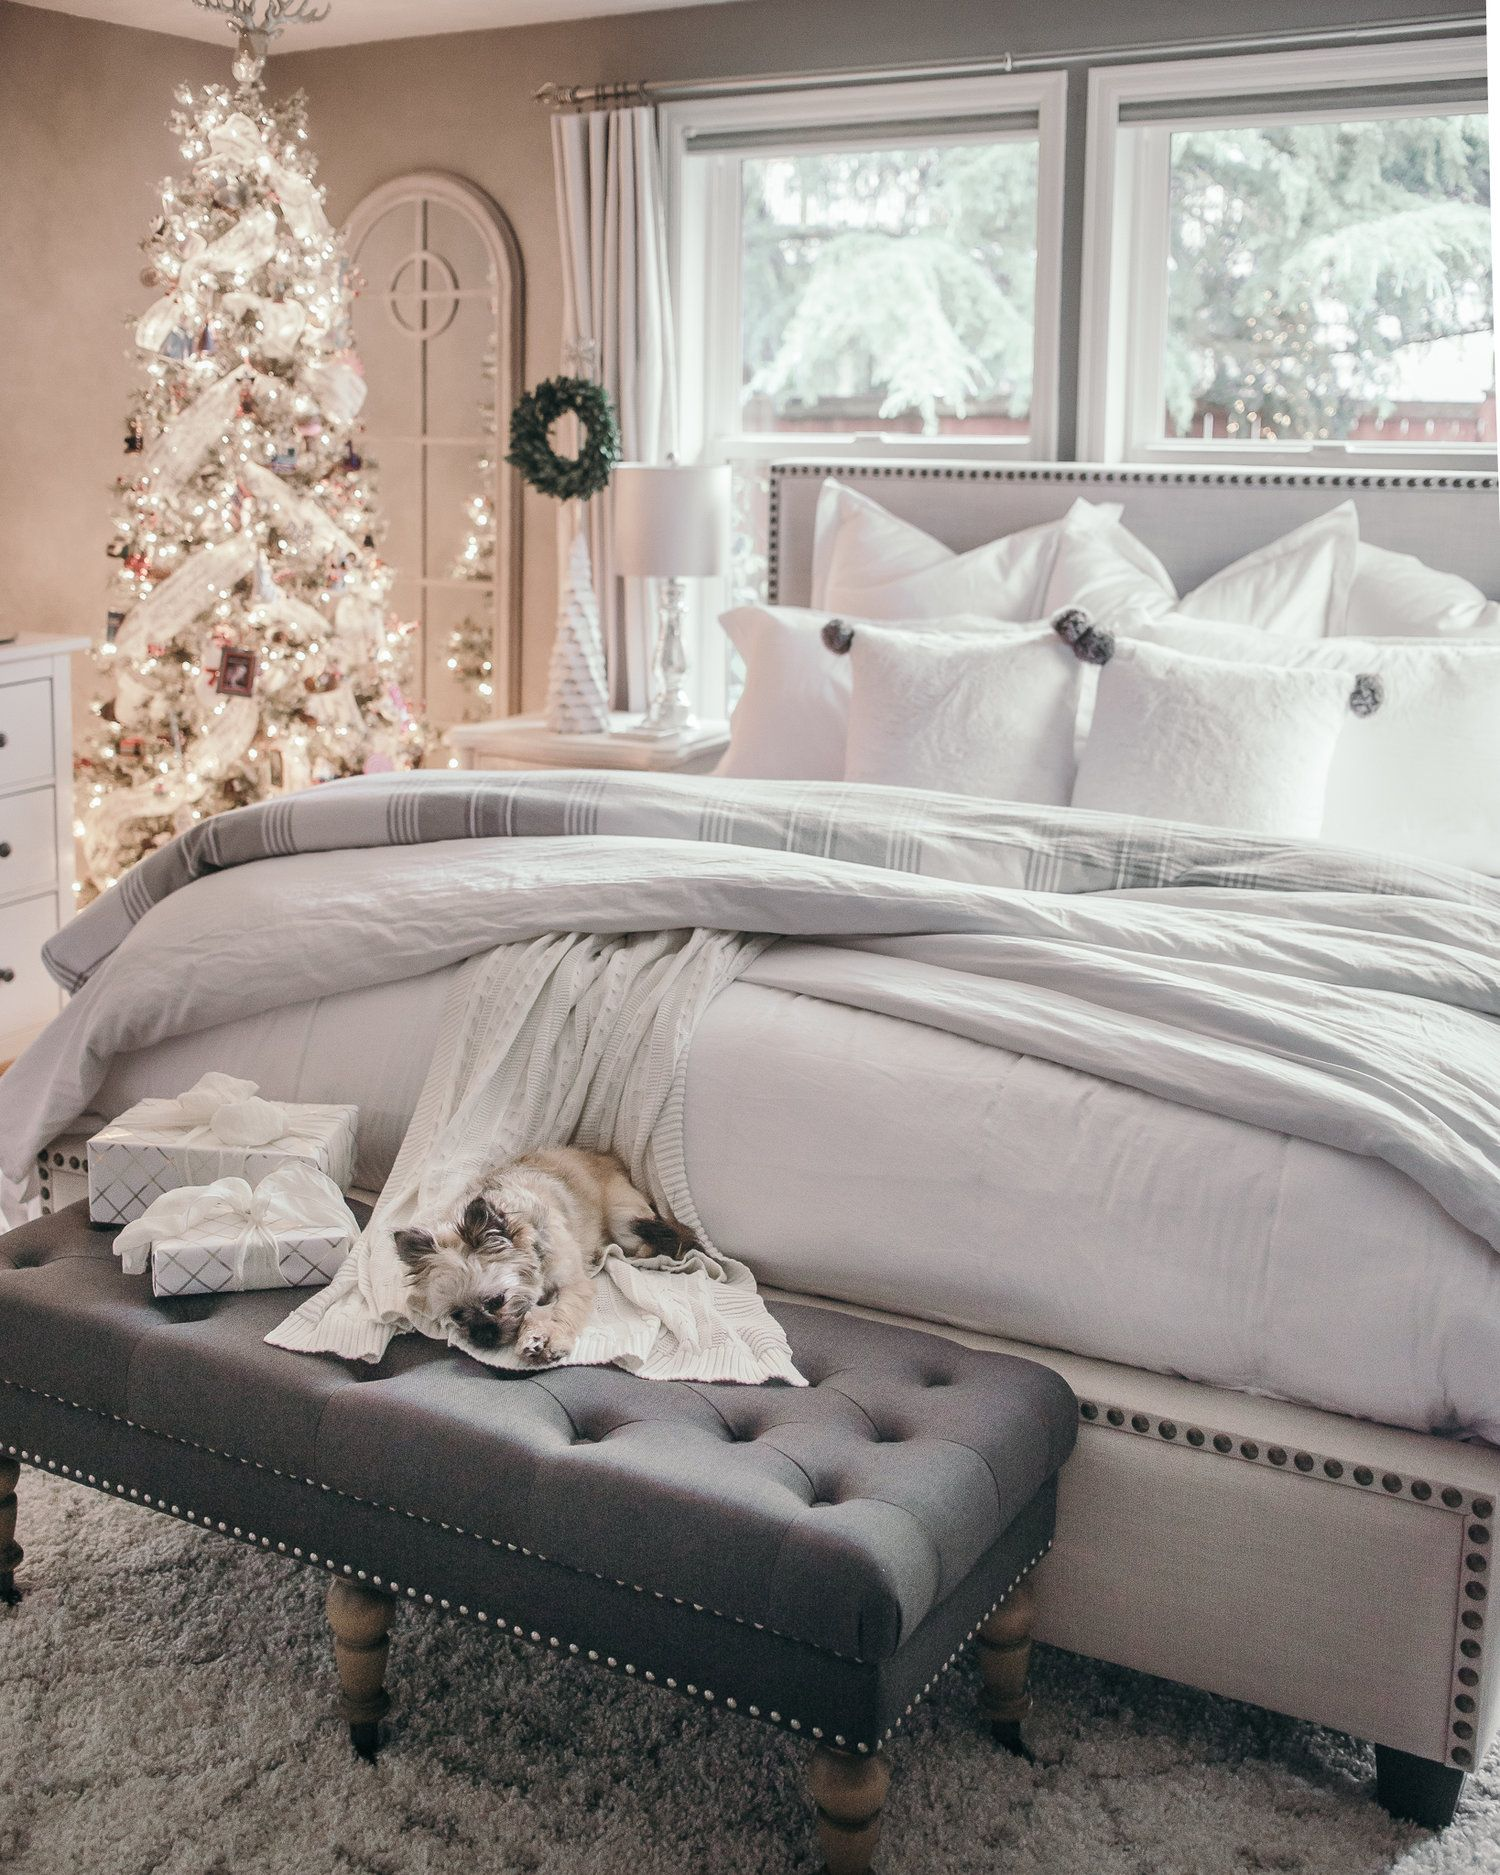 Christmas Decor Ideas House Of Five Master Bedroom Winter Bedroom Decor Christmas Bedroom Winter Bedroom